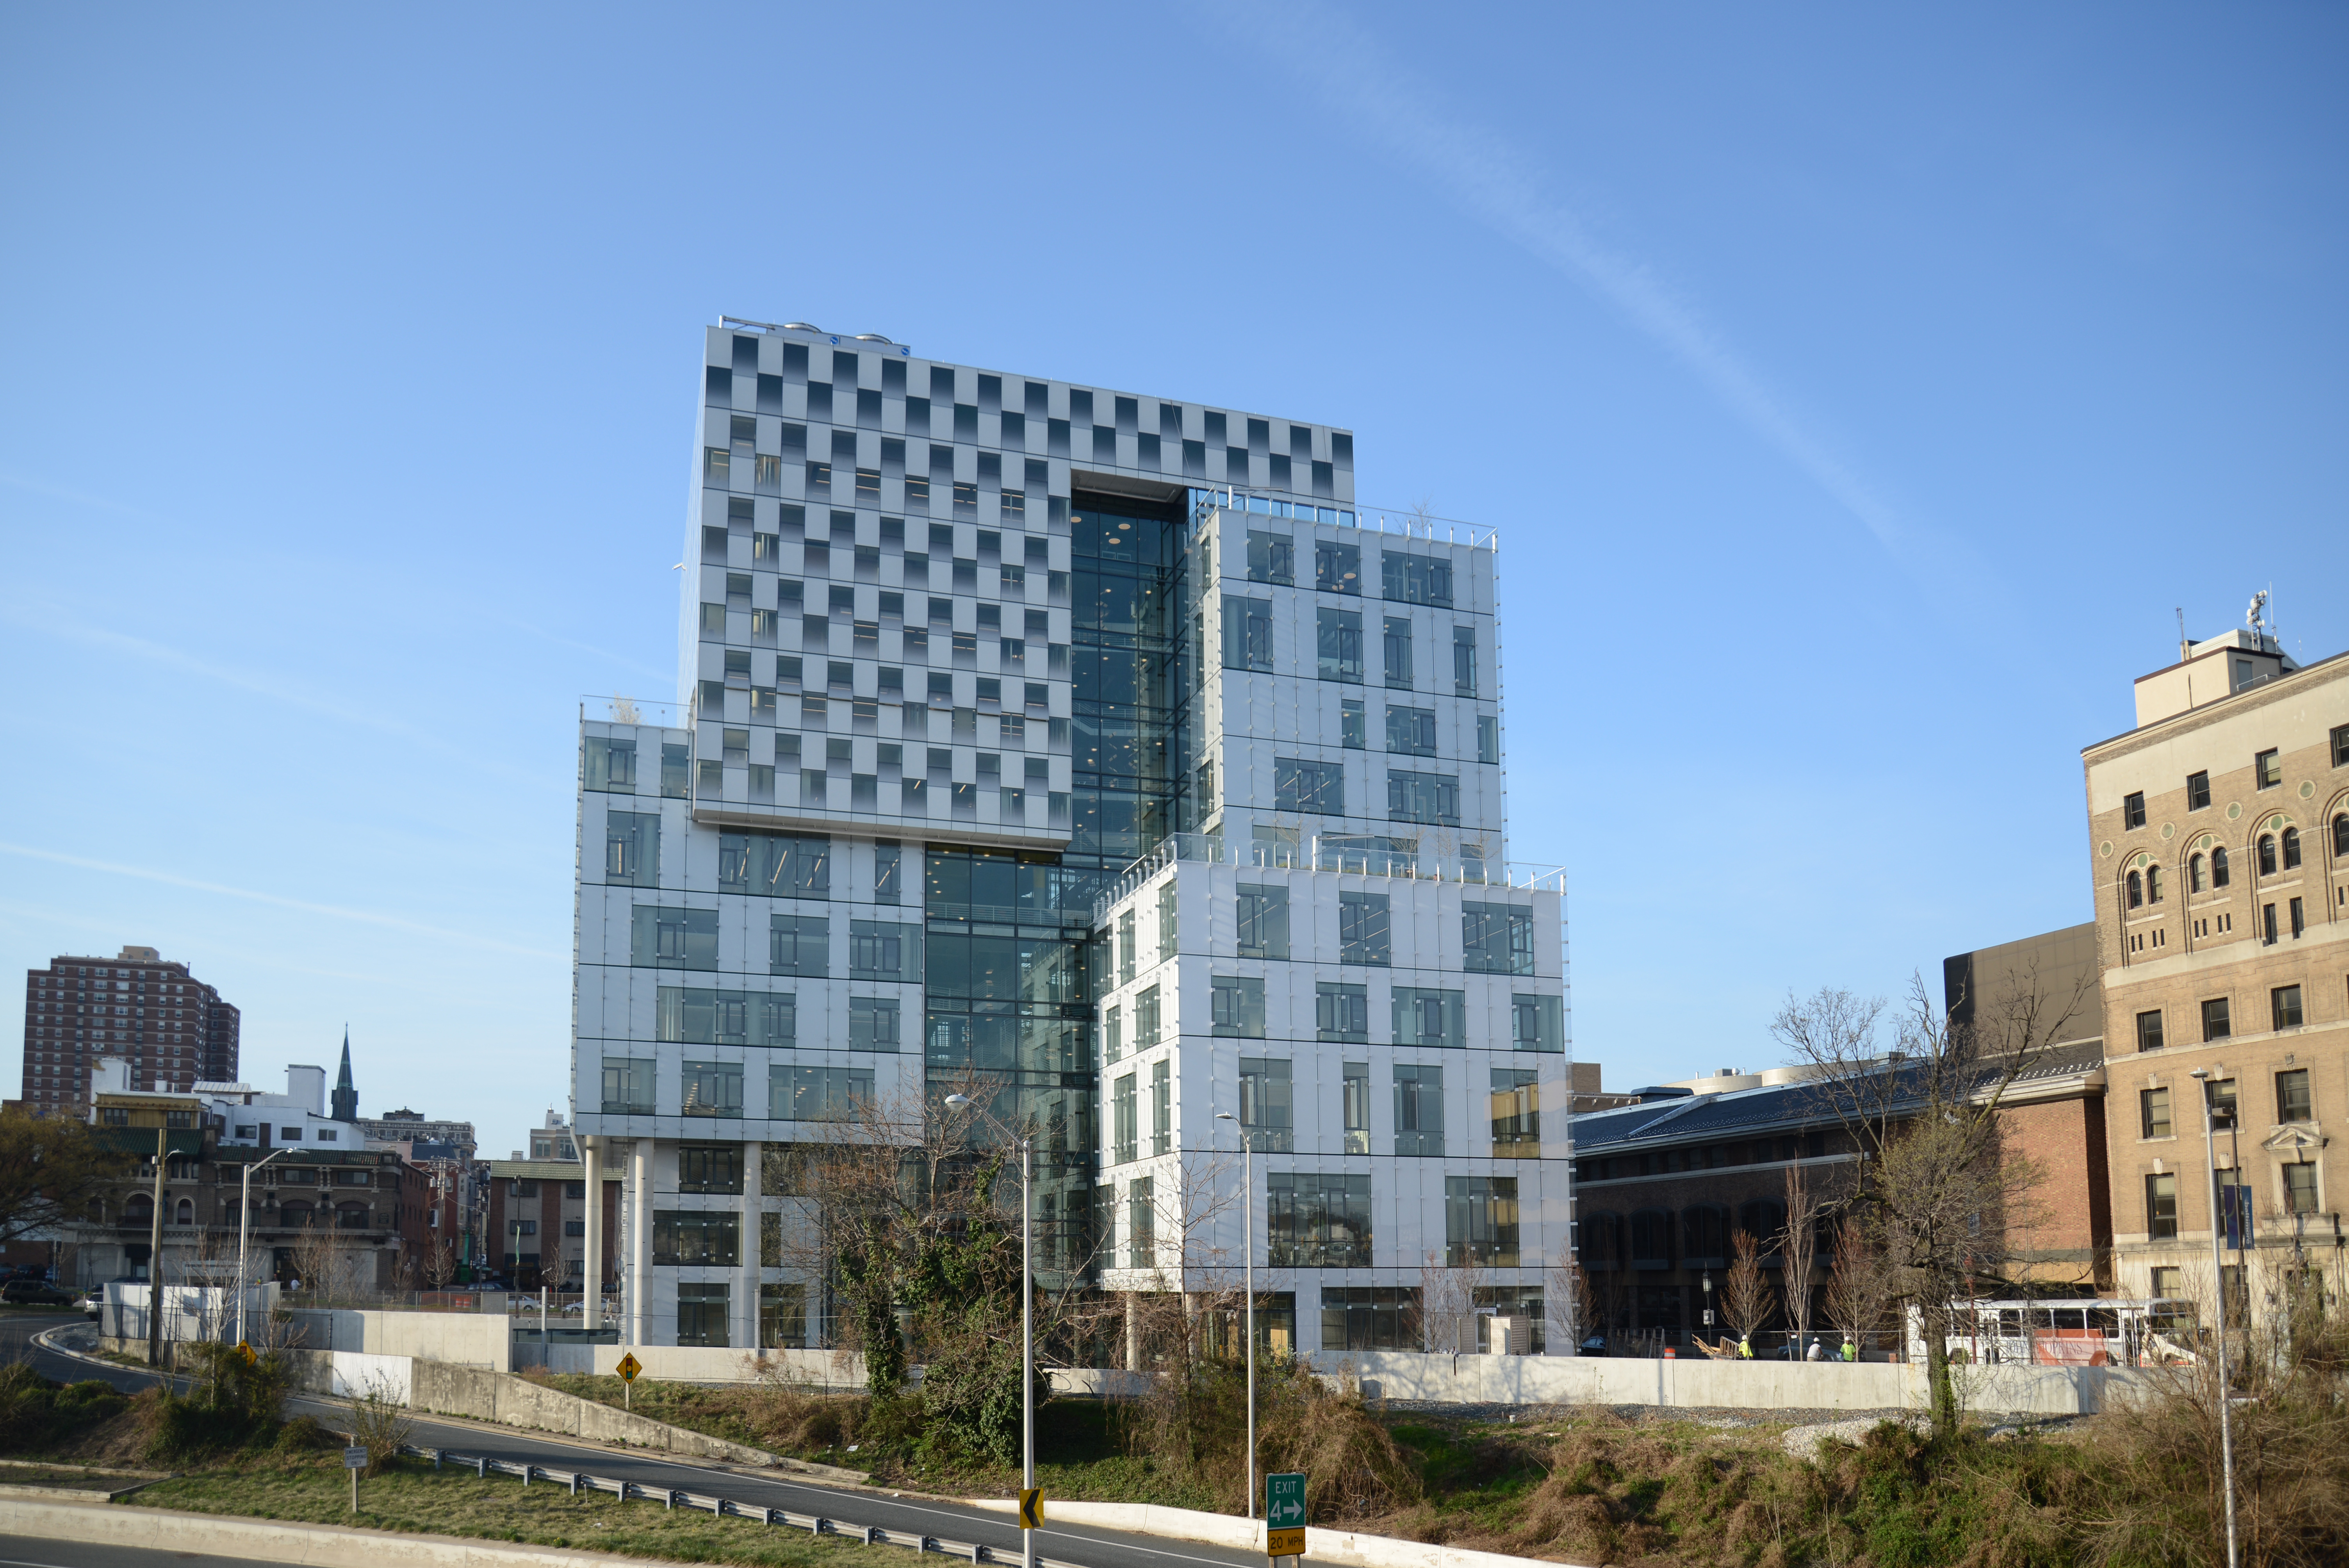 University Of Baltimore Law >> The John And Frances Angelos Law Center At The University Of